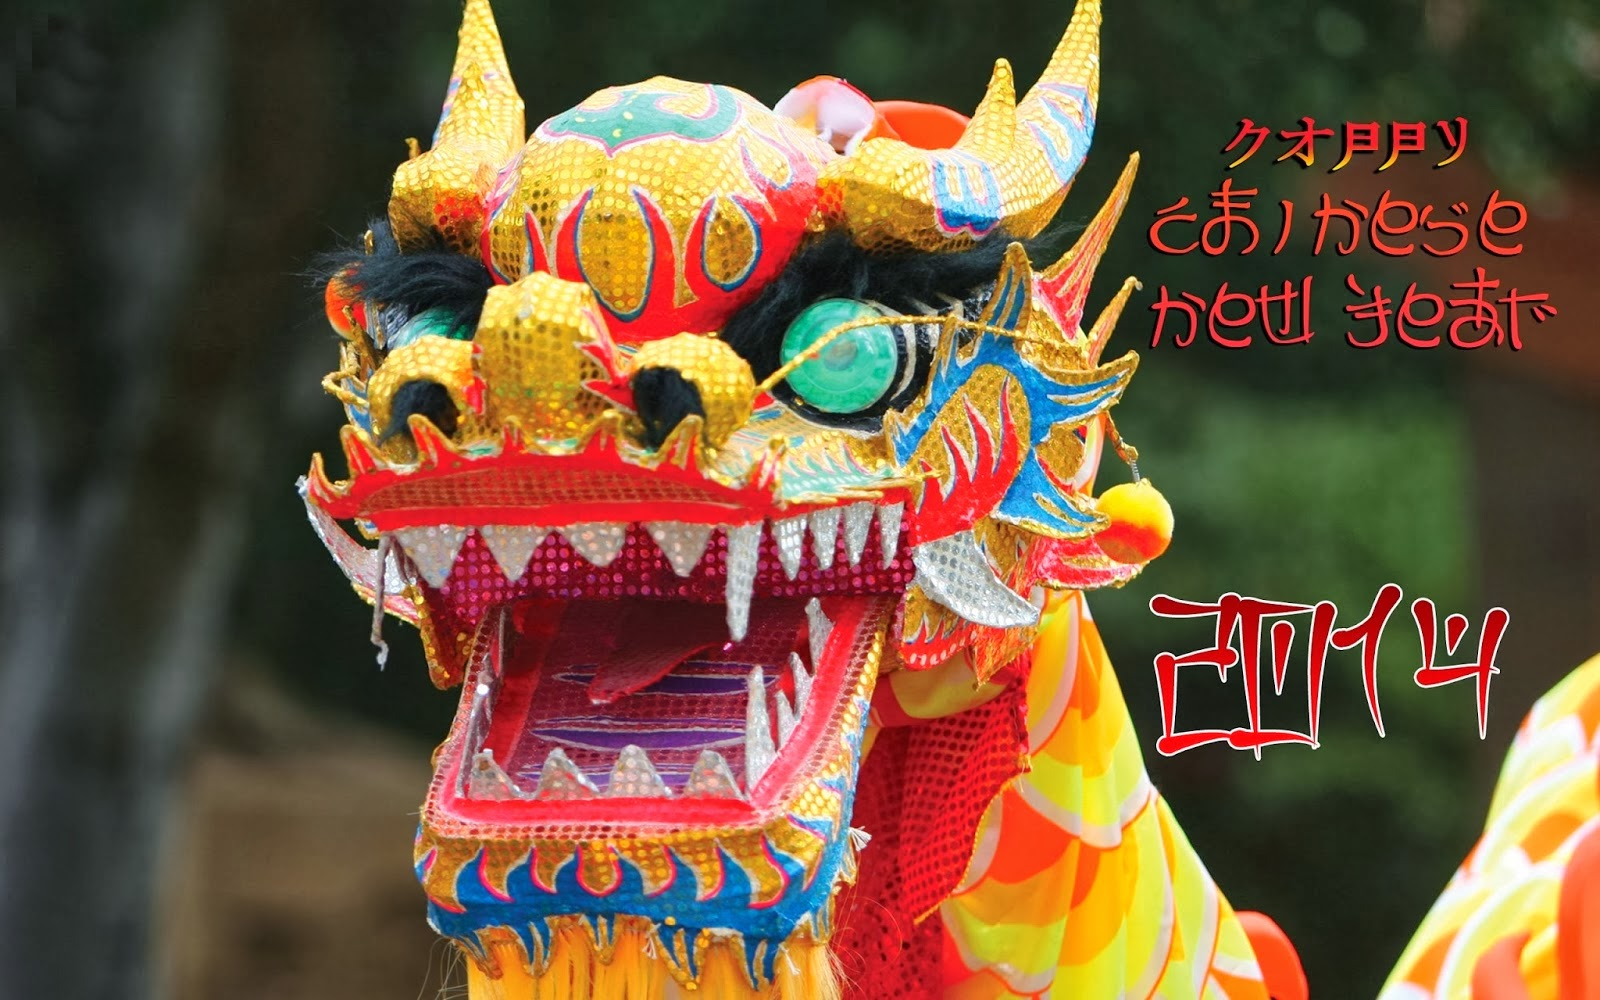 Happy chinese new year greetingssms messages with wishes wallpapers happy chinese new year greetingssms messages with wishes wallpapers m4hsunfo